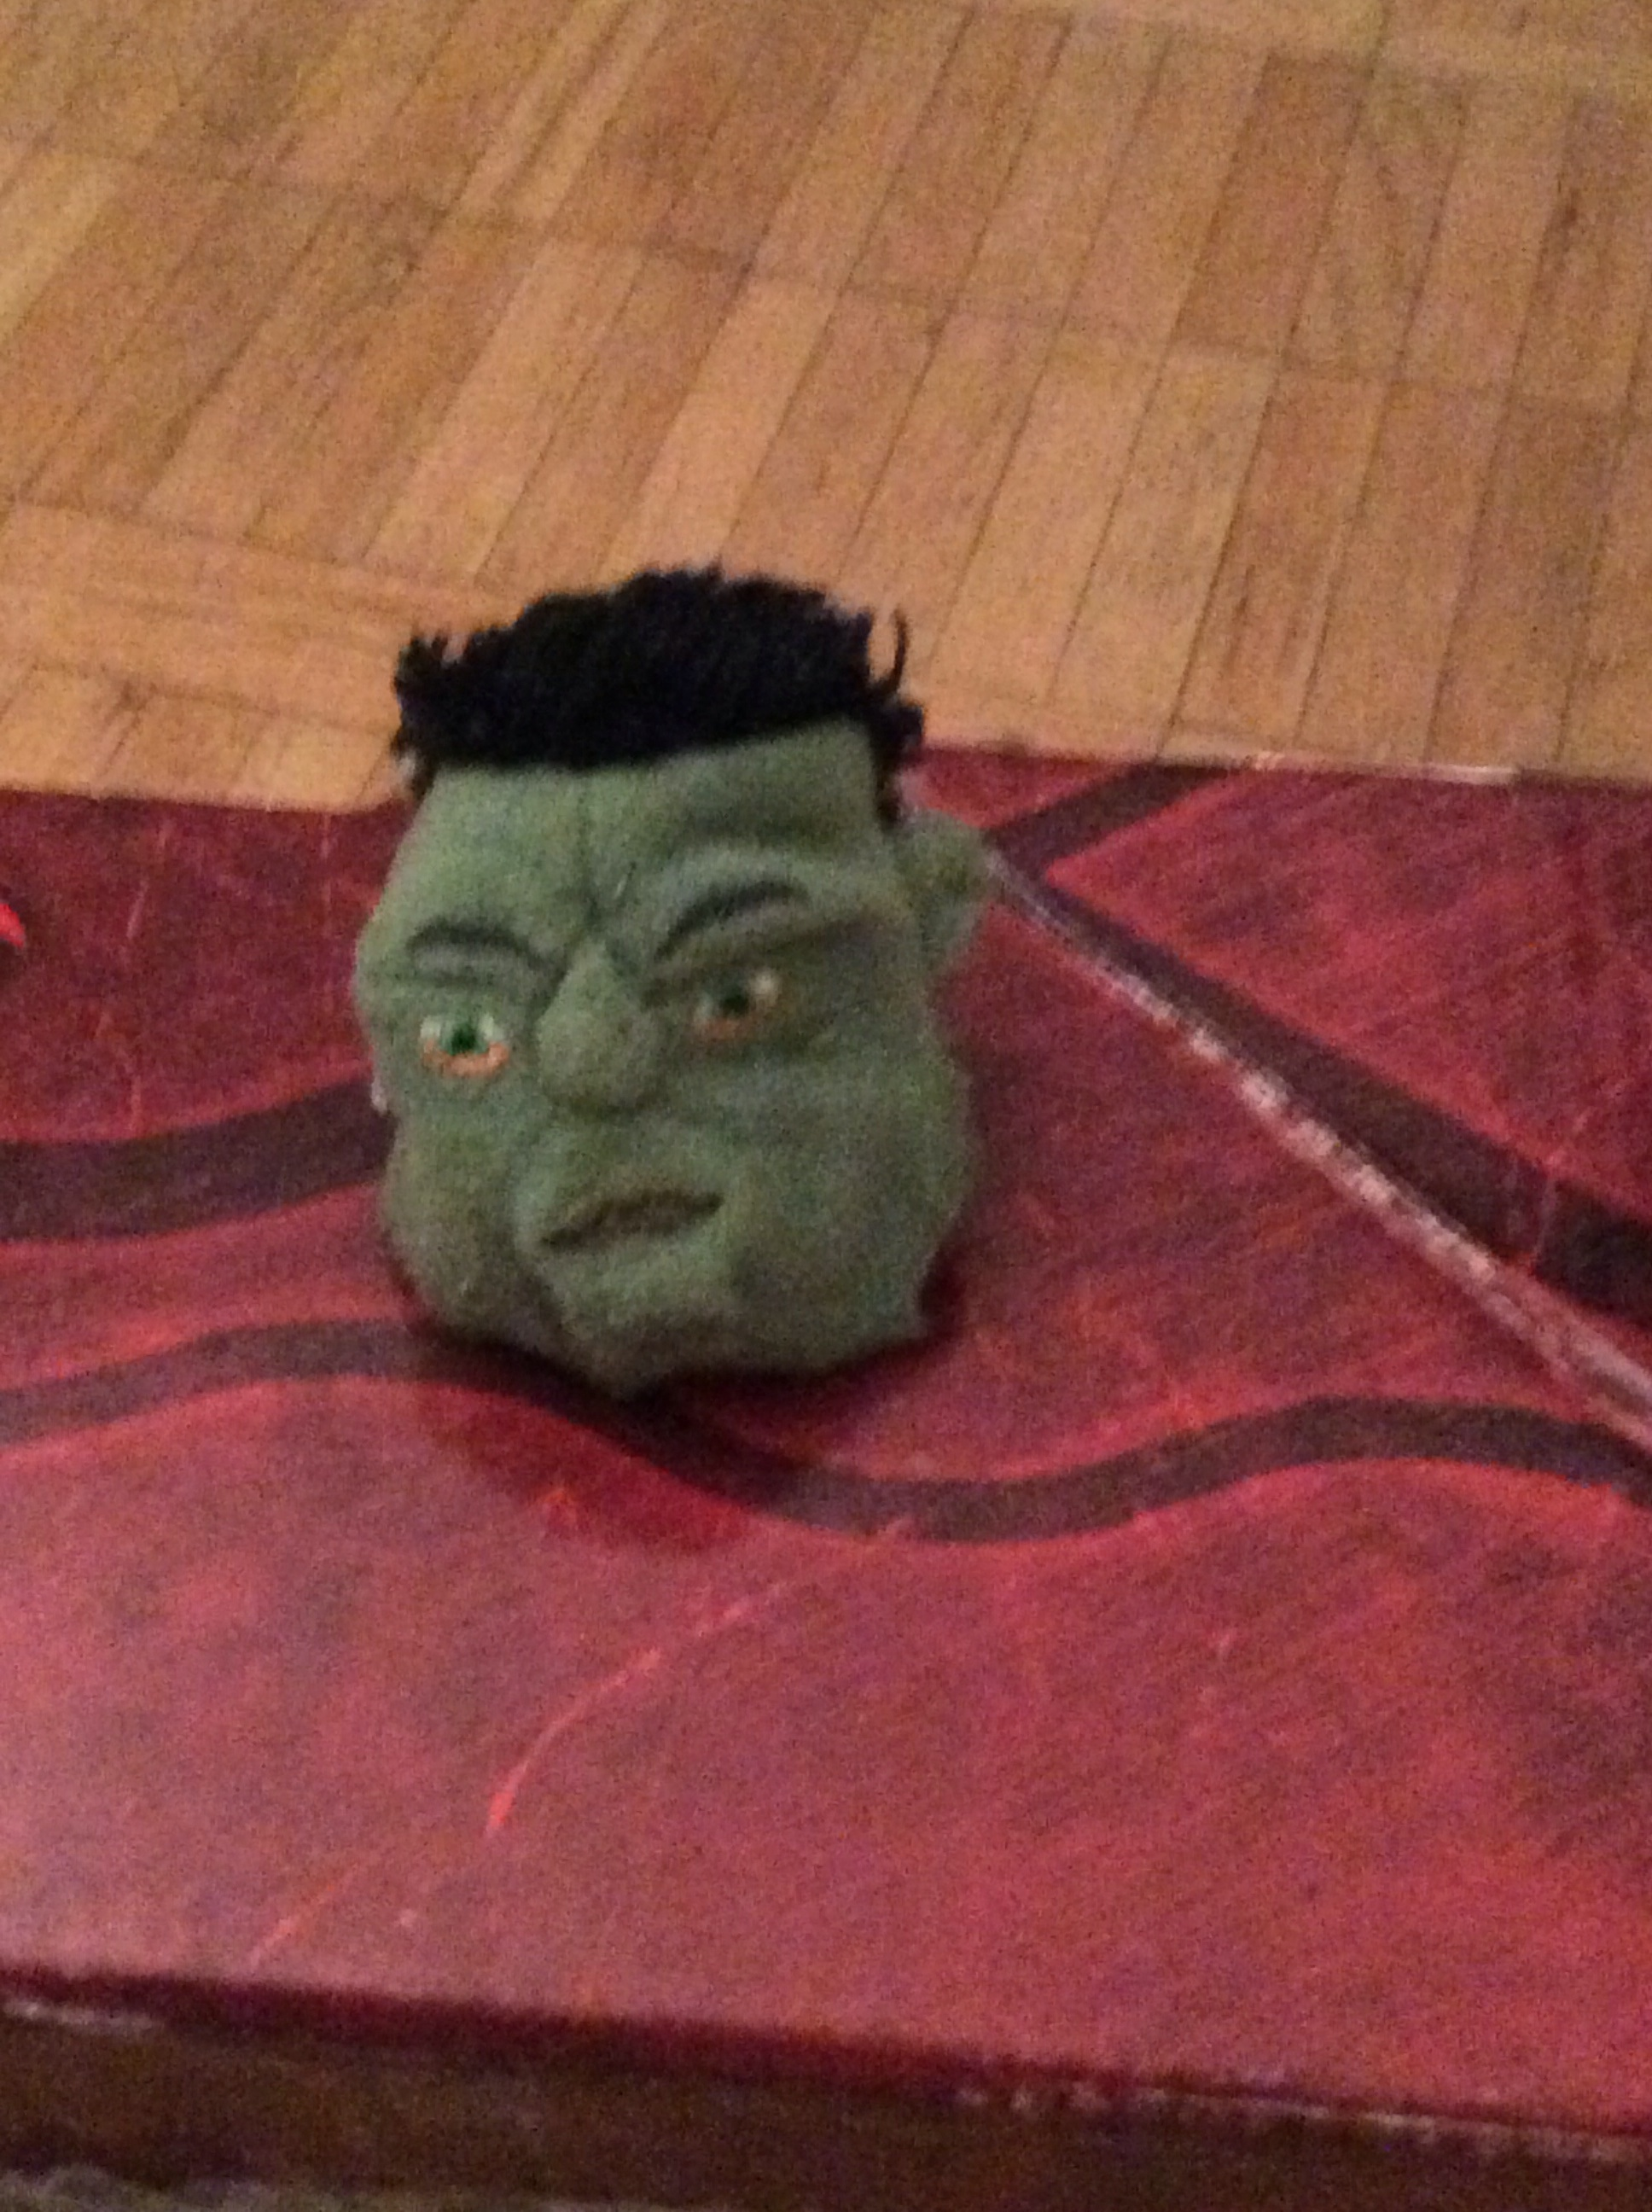 At least I'll have my mojo to help me along. Welcome aboard, Hulk.